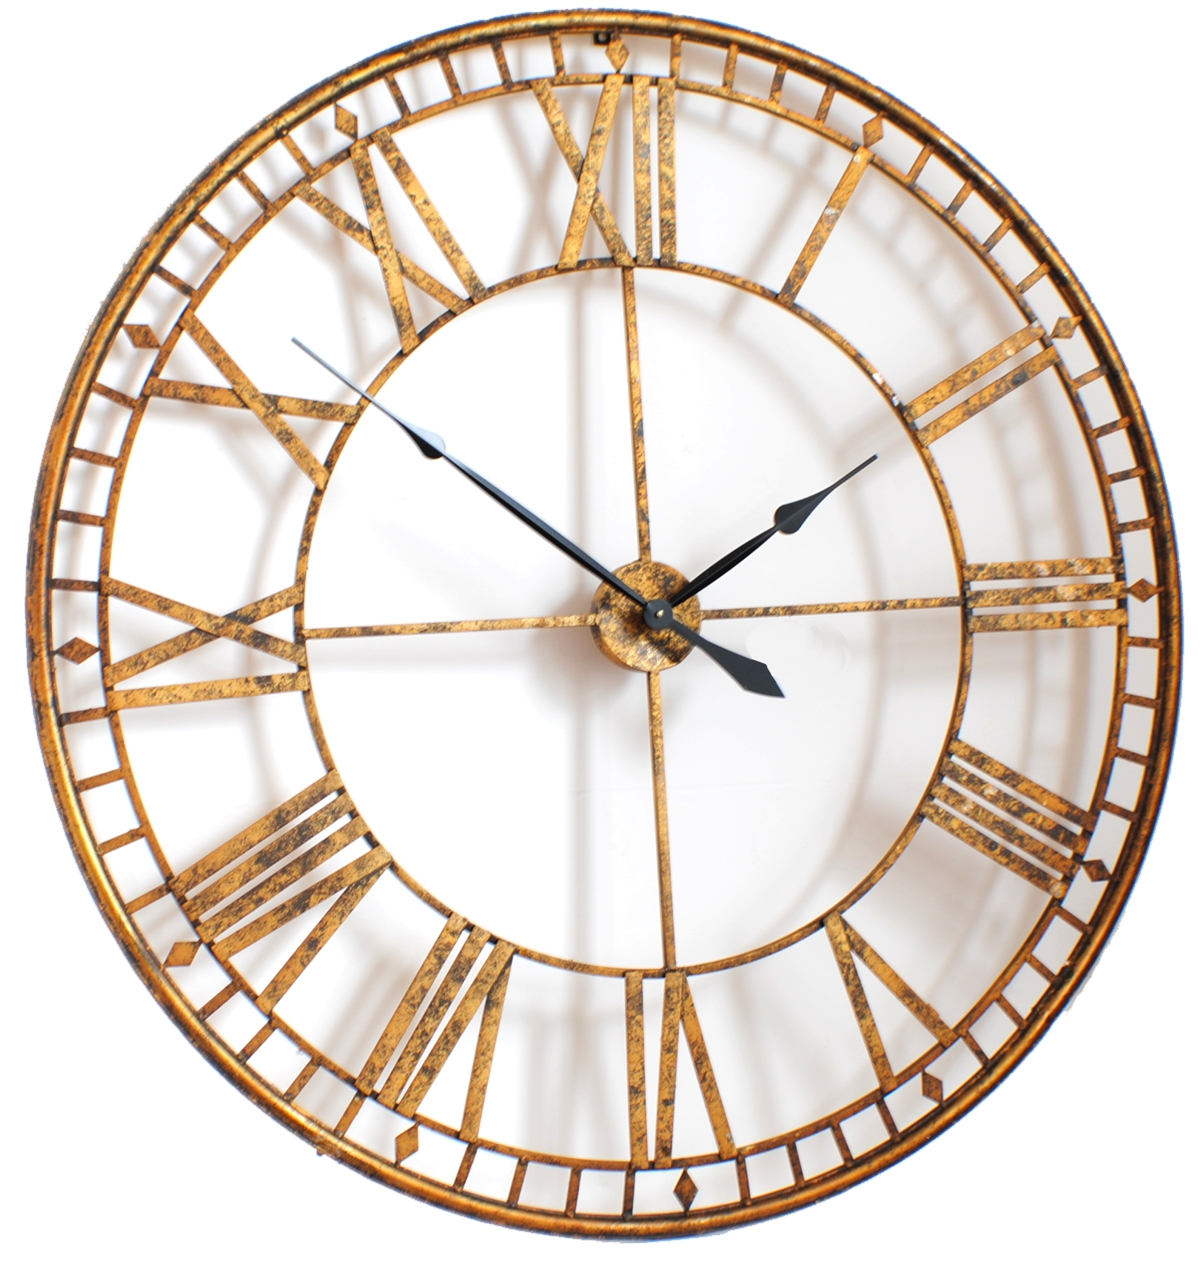 golden oversized wall clock with roman numerals and black hand